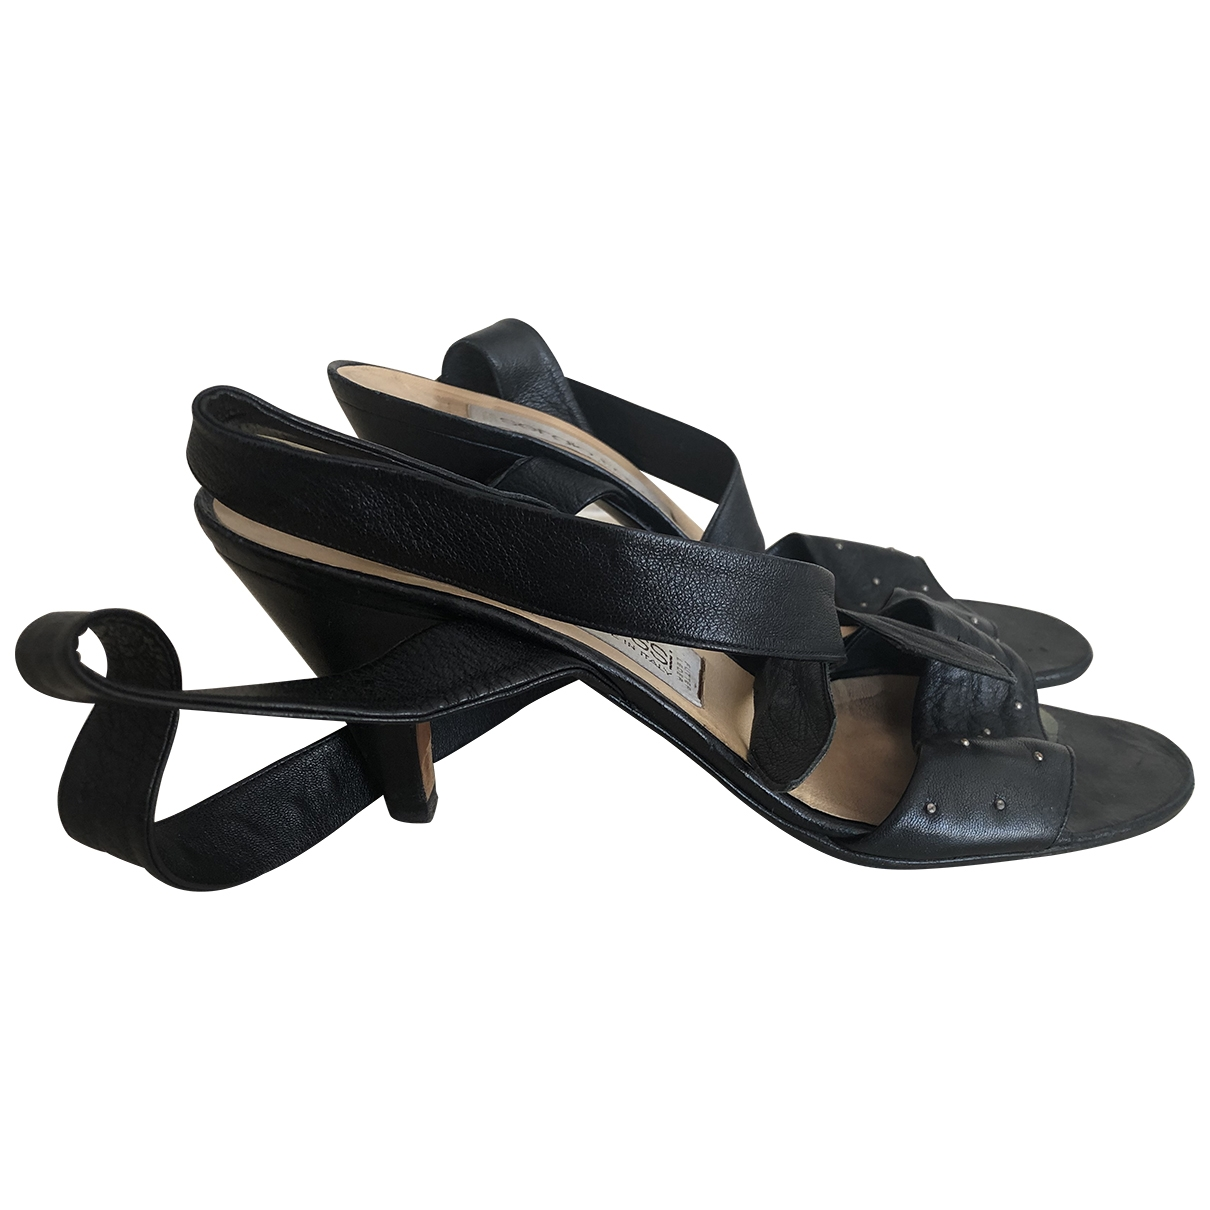 Sergio Rossi \N Black Leather Heels for Women 39 EU